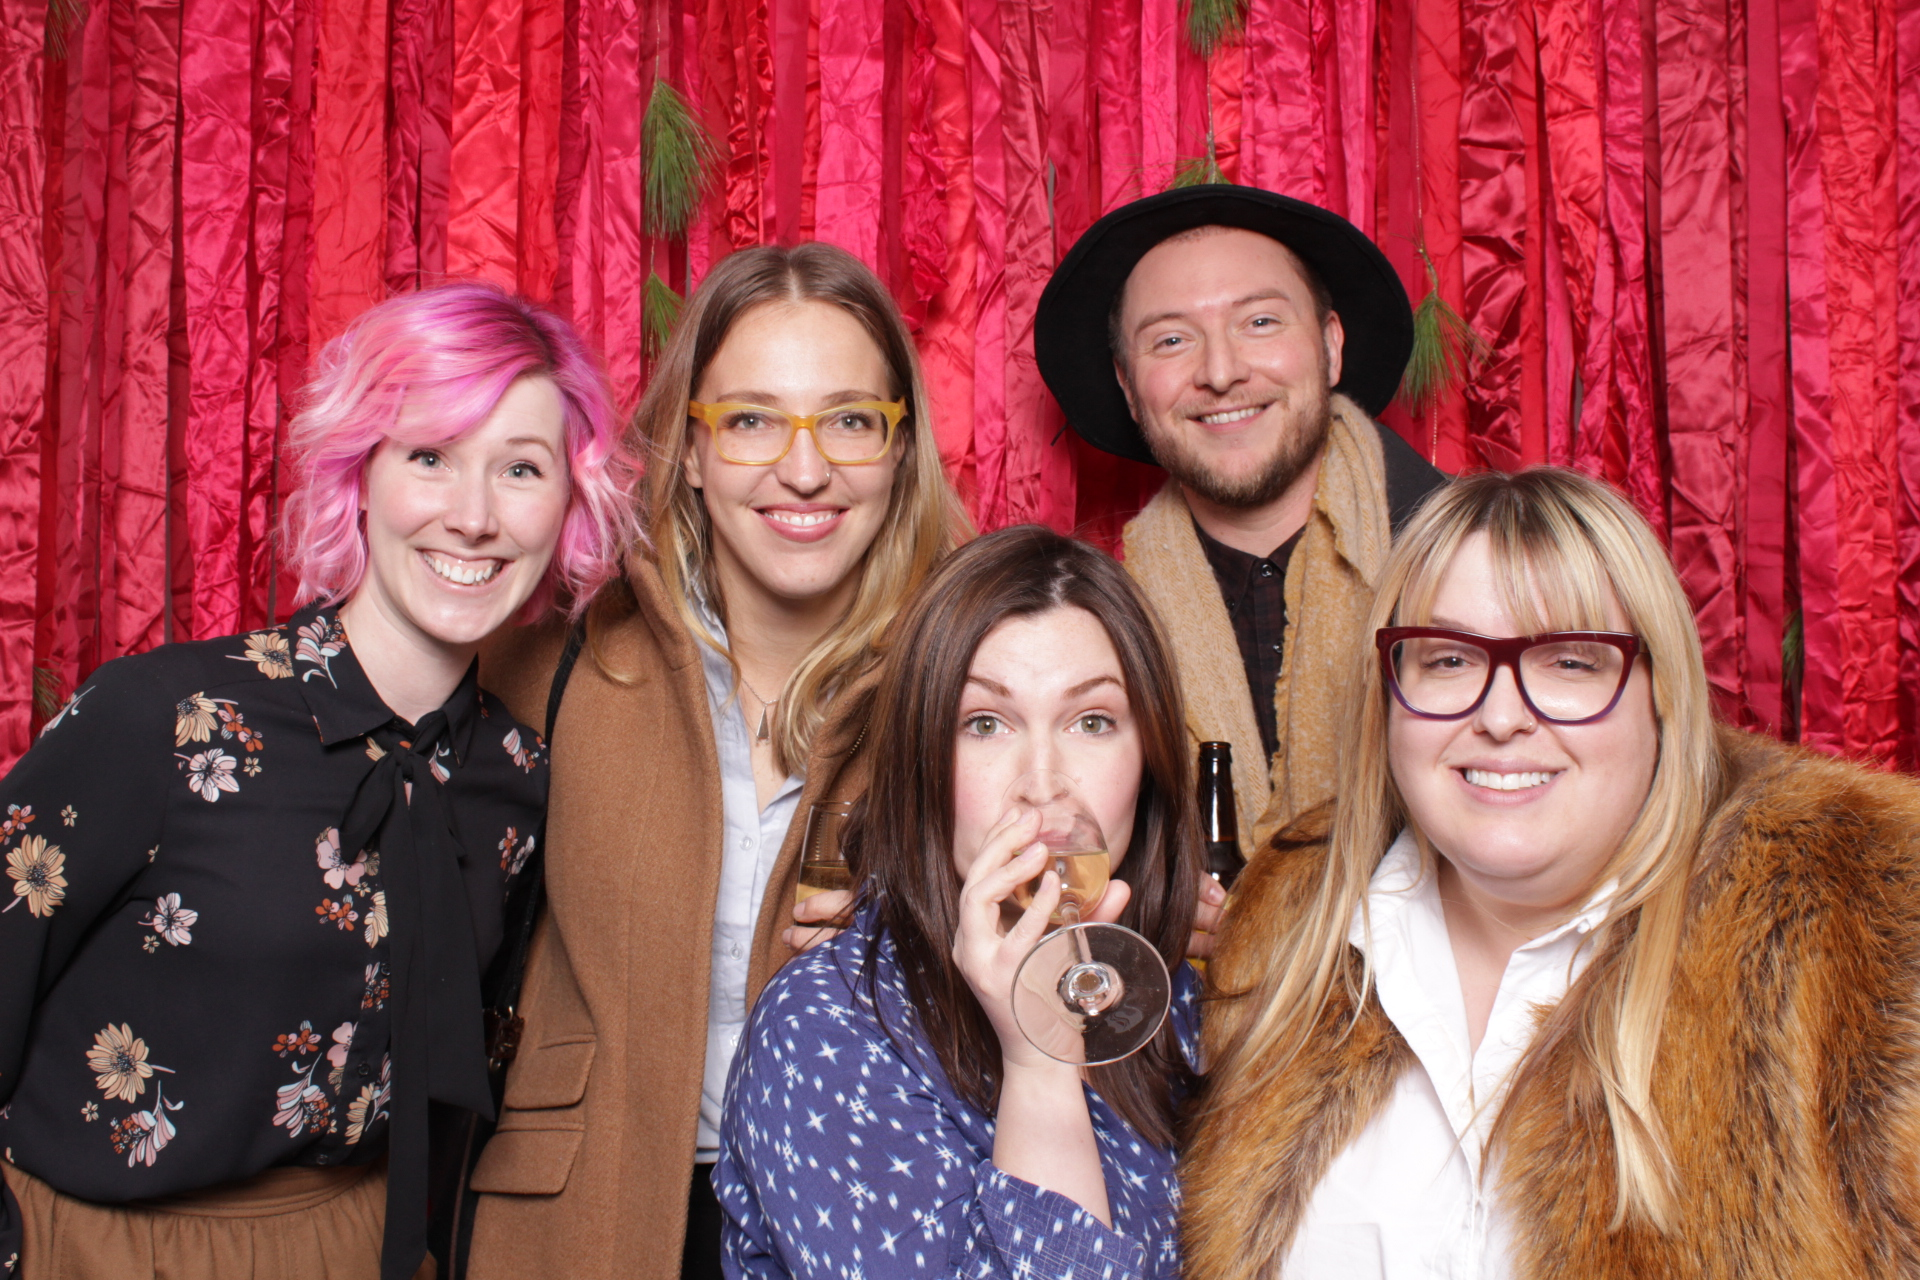 Hutton_House_Minneapolis_Photo_booth_rentals (1).jpg